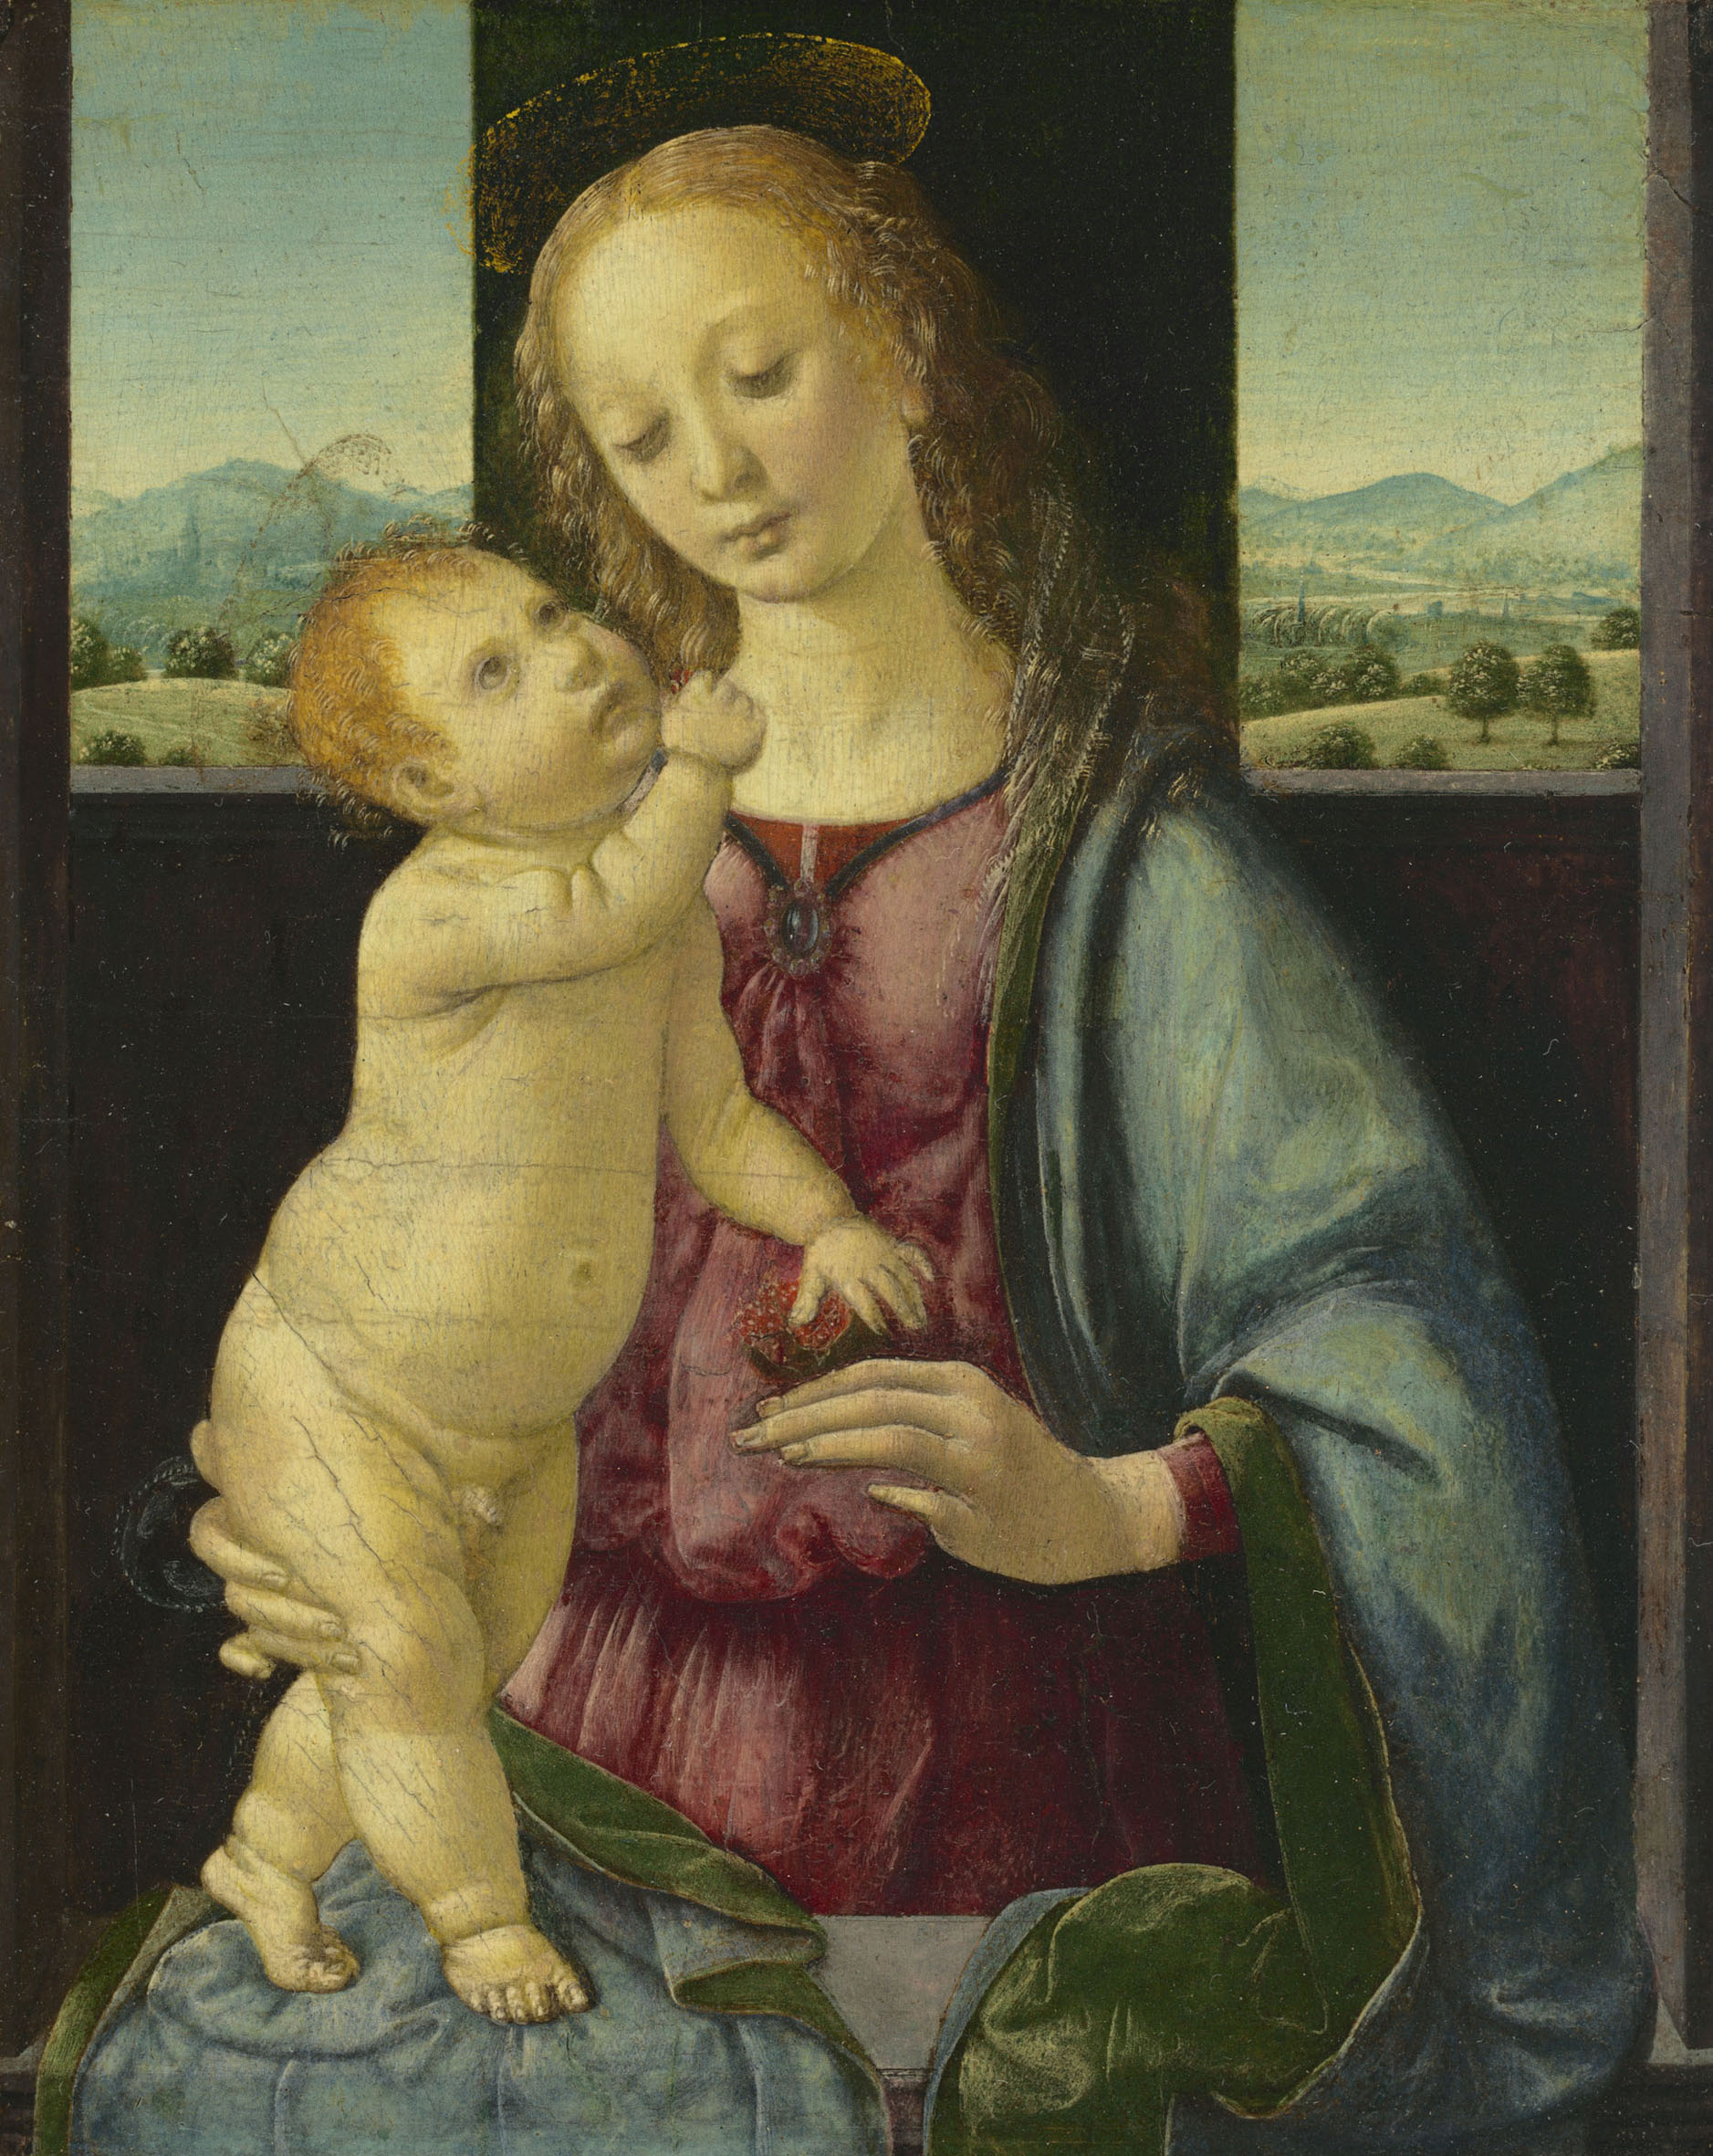 Leonardo (attr. a Lorenzo di Credi), Madonna della melagrana, nota anche come Madonna Dreyfus. Washington, National Gallery of Art